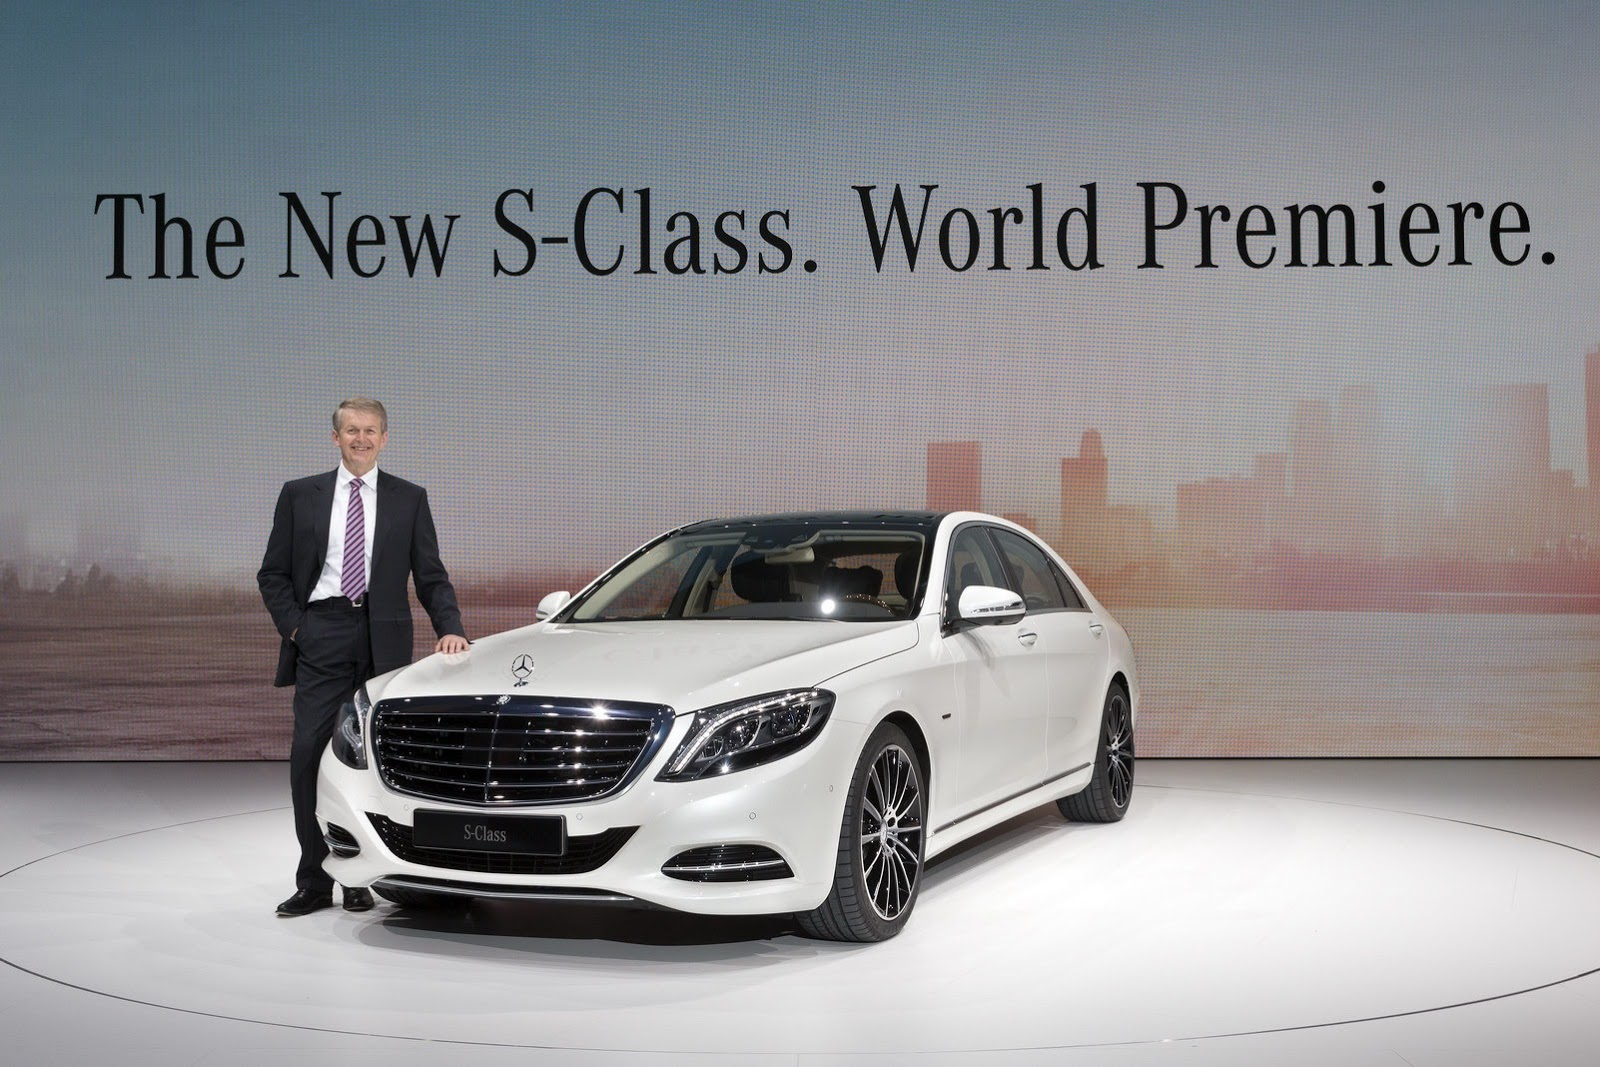 2014 Mercedes Benz S-Class Reveal Event - SMADE MEDIA (2)